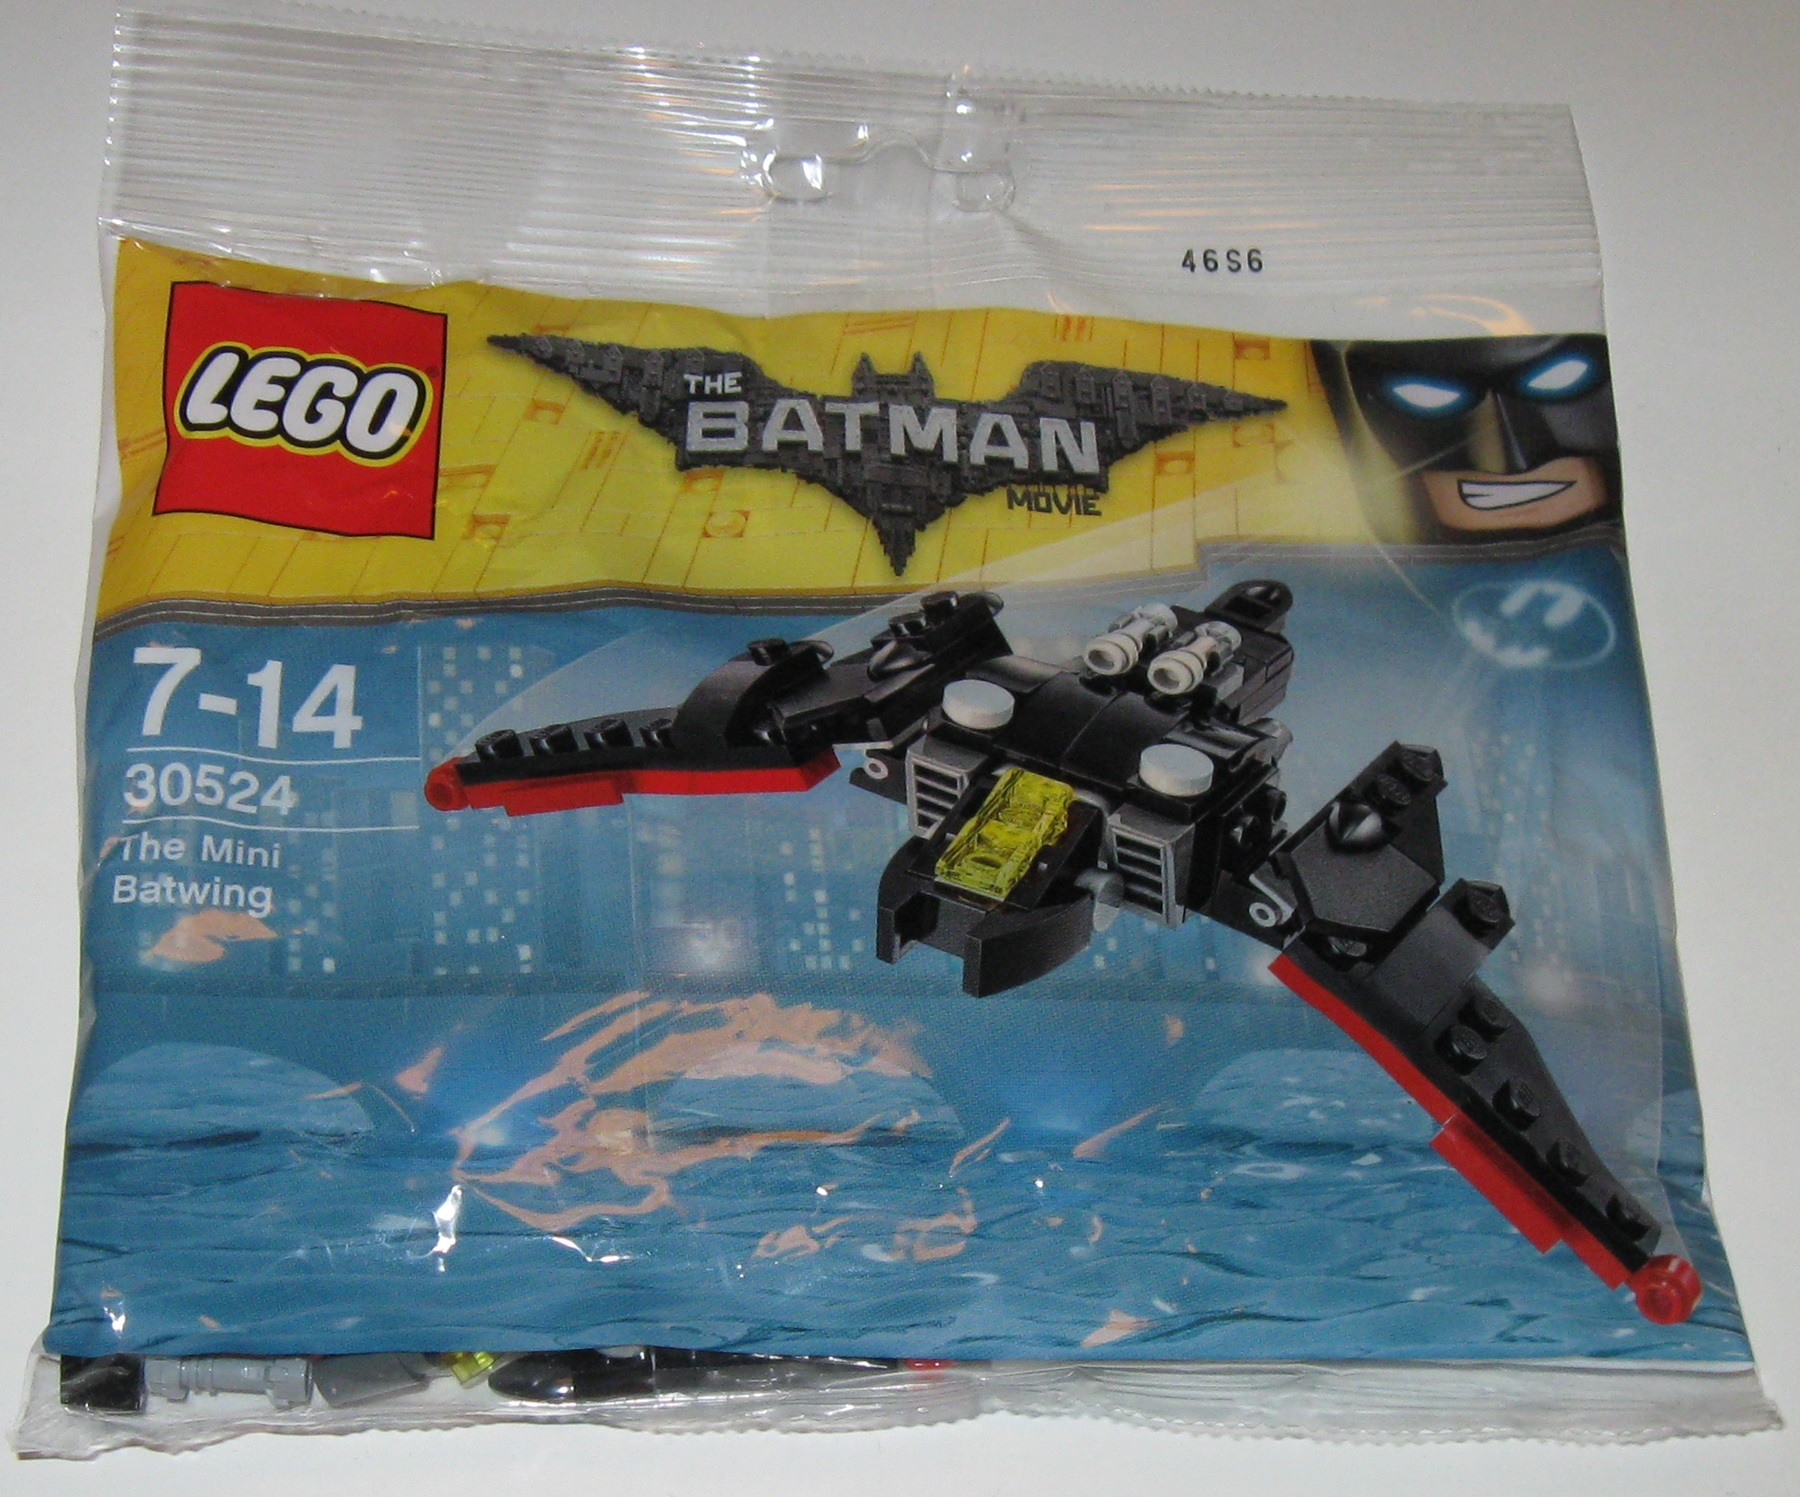 0100 Lego The Batman movie 30524